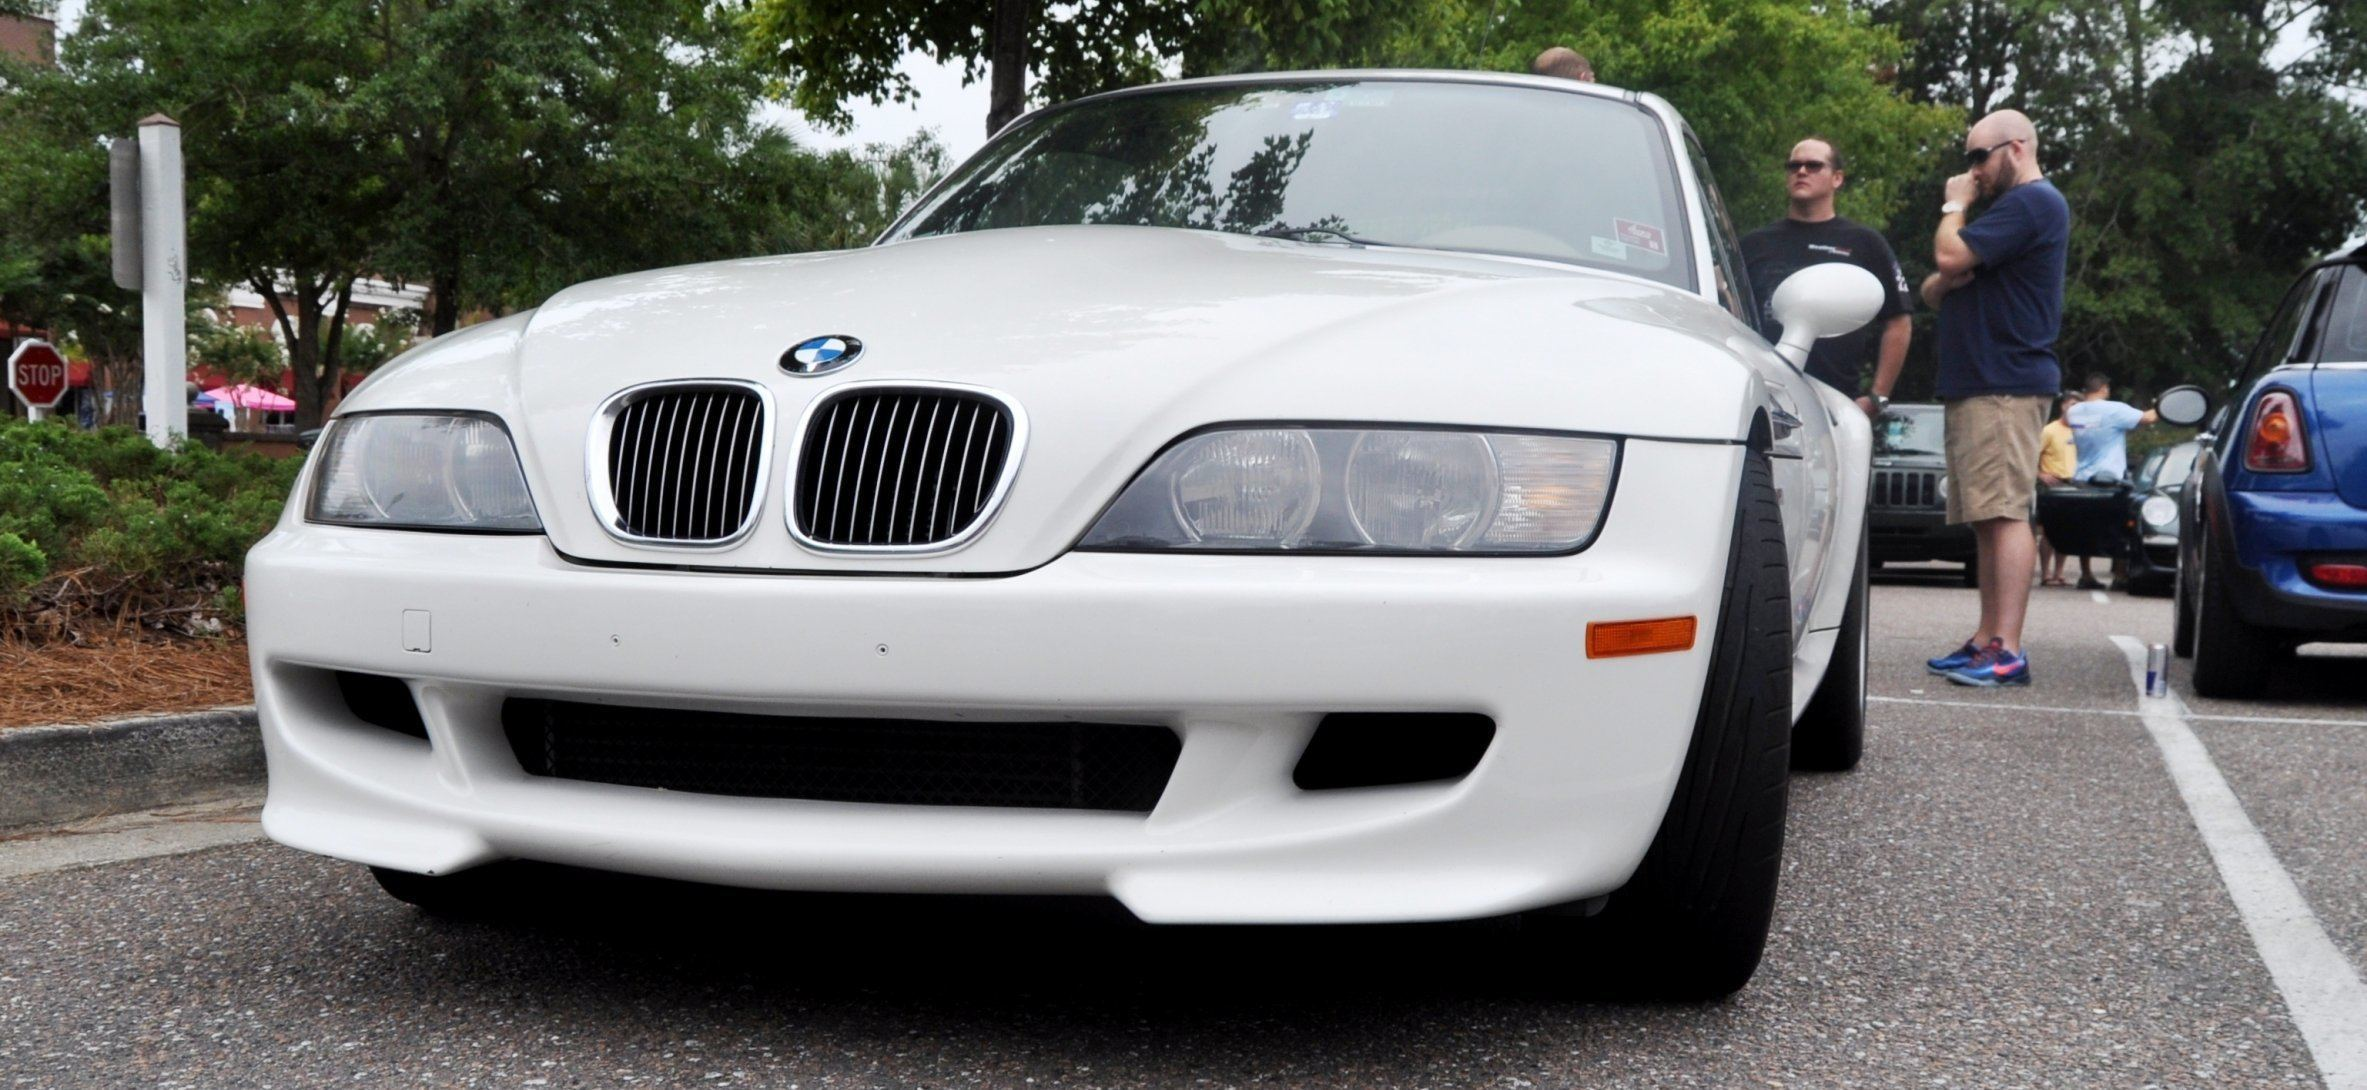 Charleston Cars & Coffee Gallery - 1999 BMW M Coupe - Vunder ...